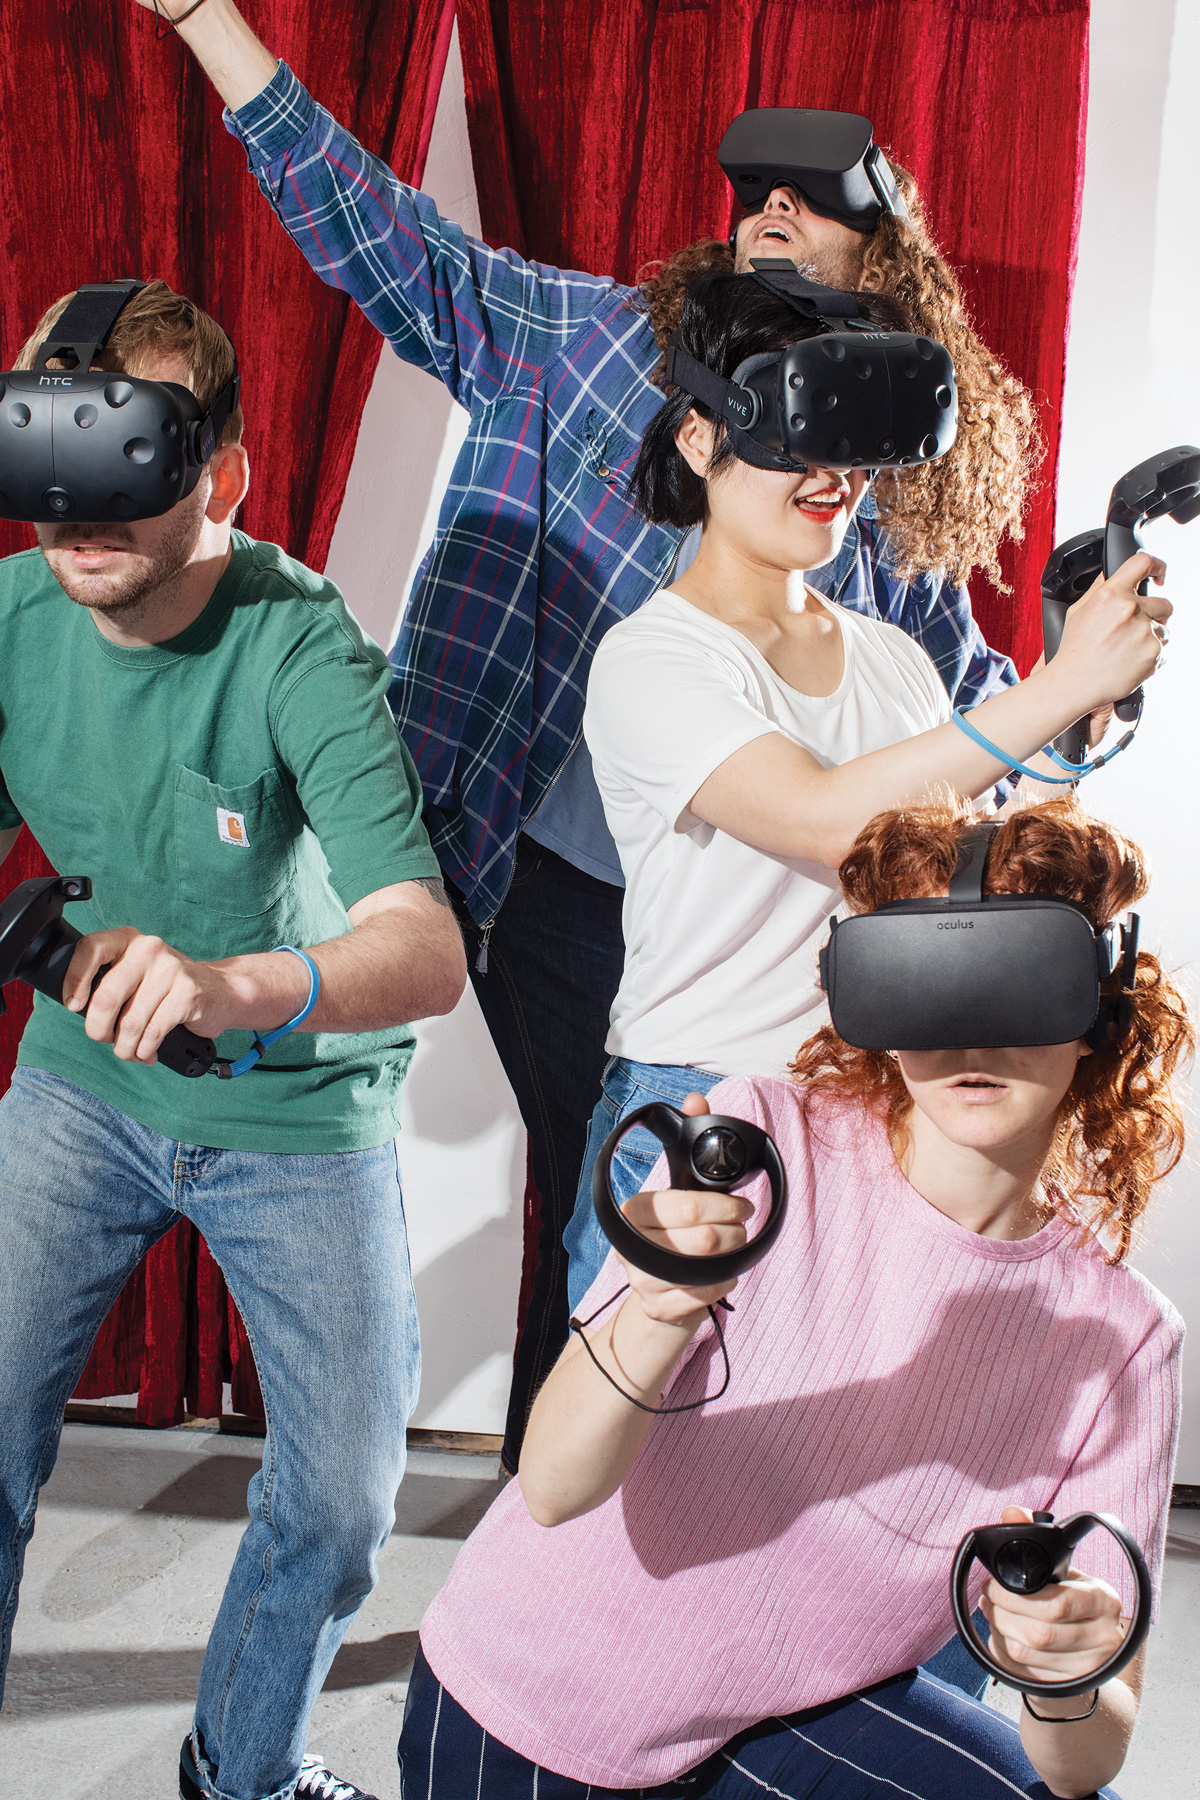 """<b><a href=""""https://www.technologyreview.com/s/607956/virtual-realitys-missing-element-other-people/"""" target=""""_blank"""">Virtual Reality's Missing Element: Other People</a></b> <br> Photographs by David Brandon Geeting"""